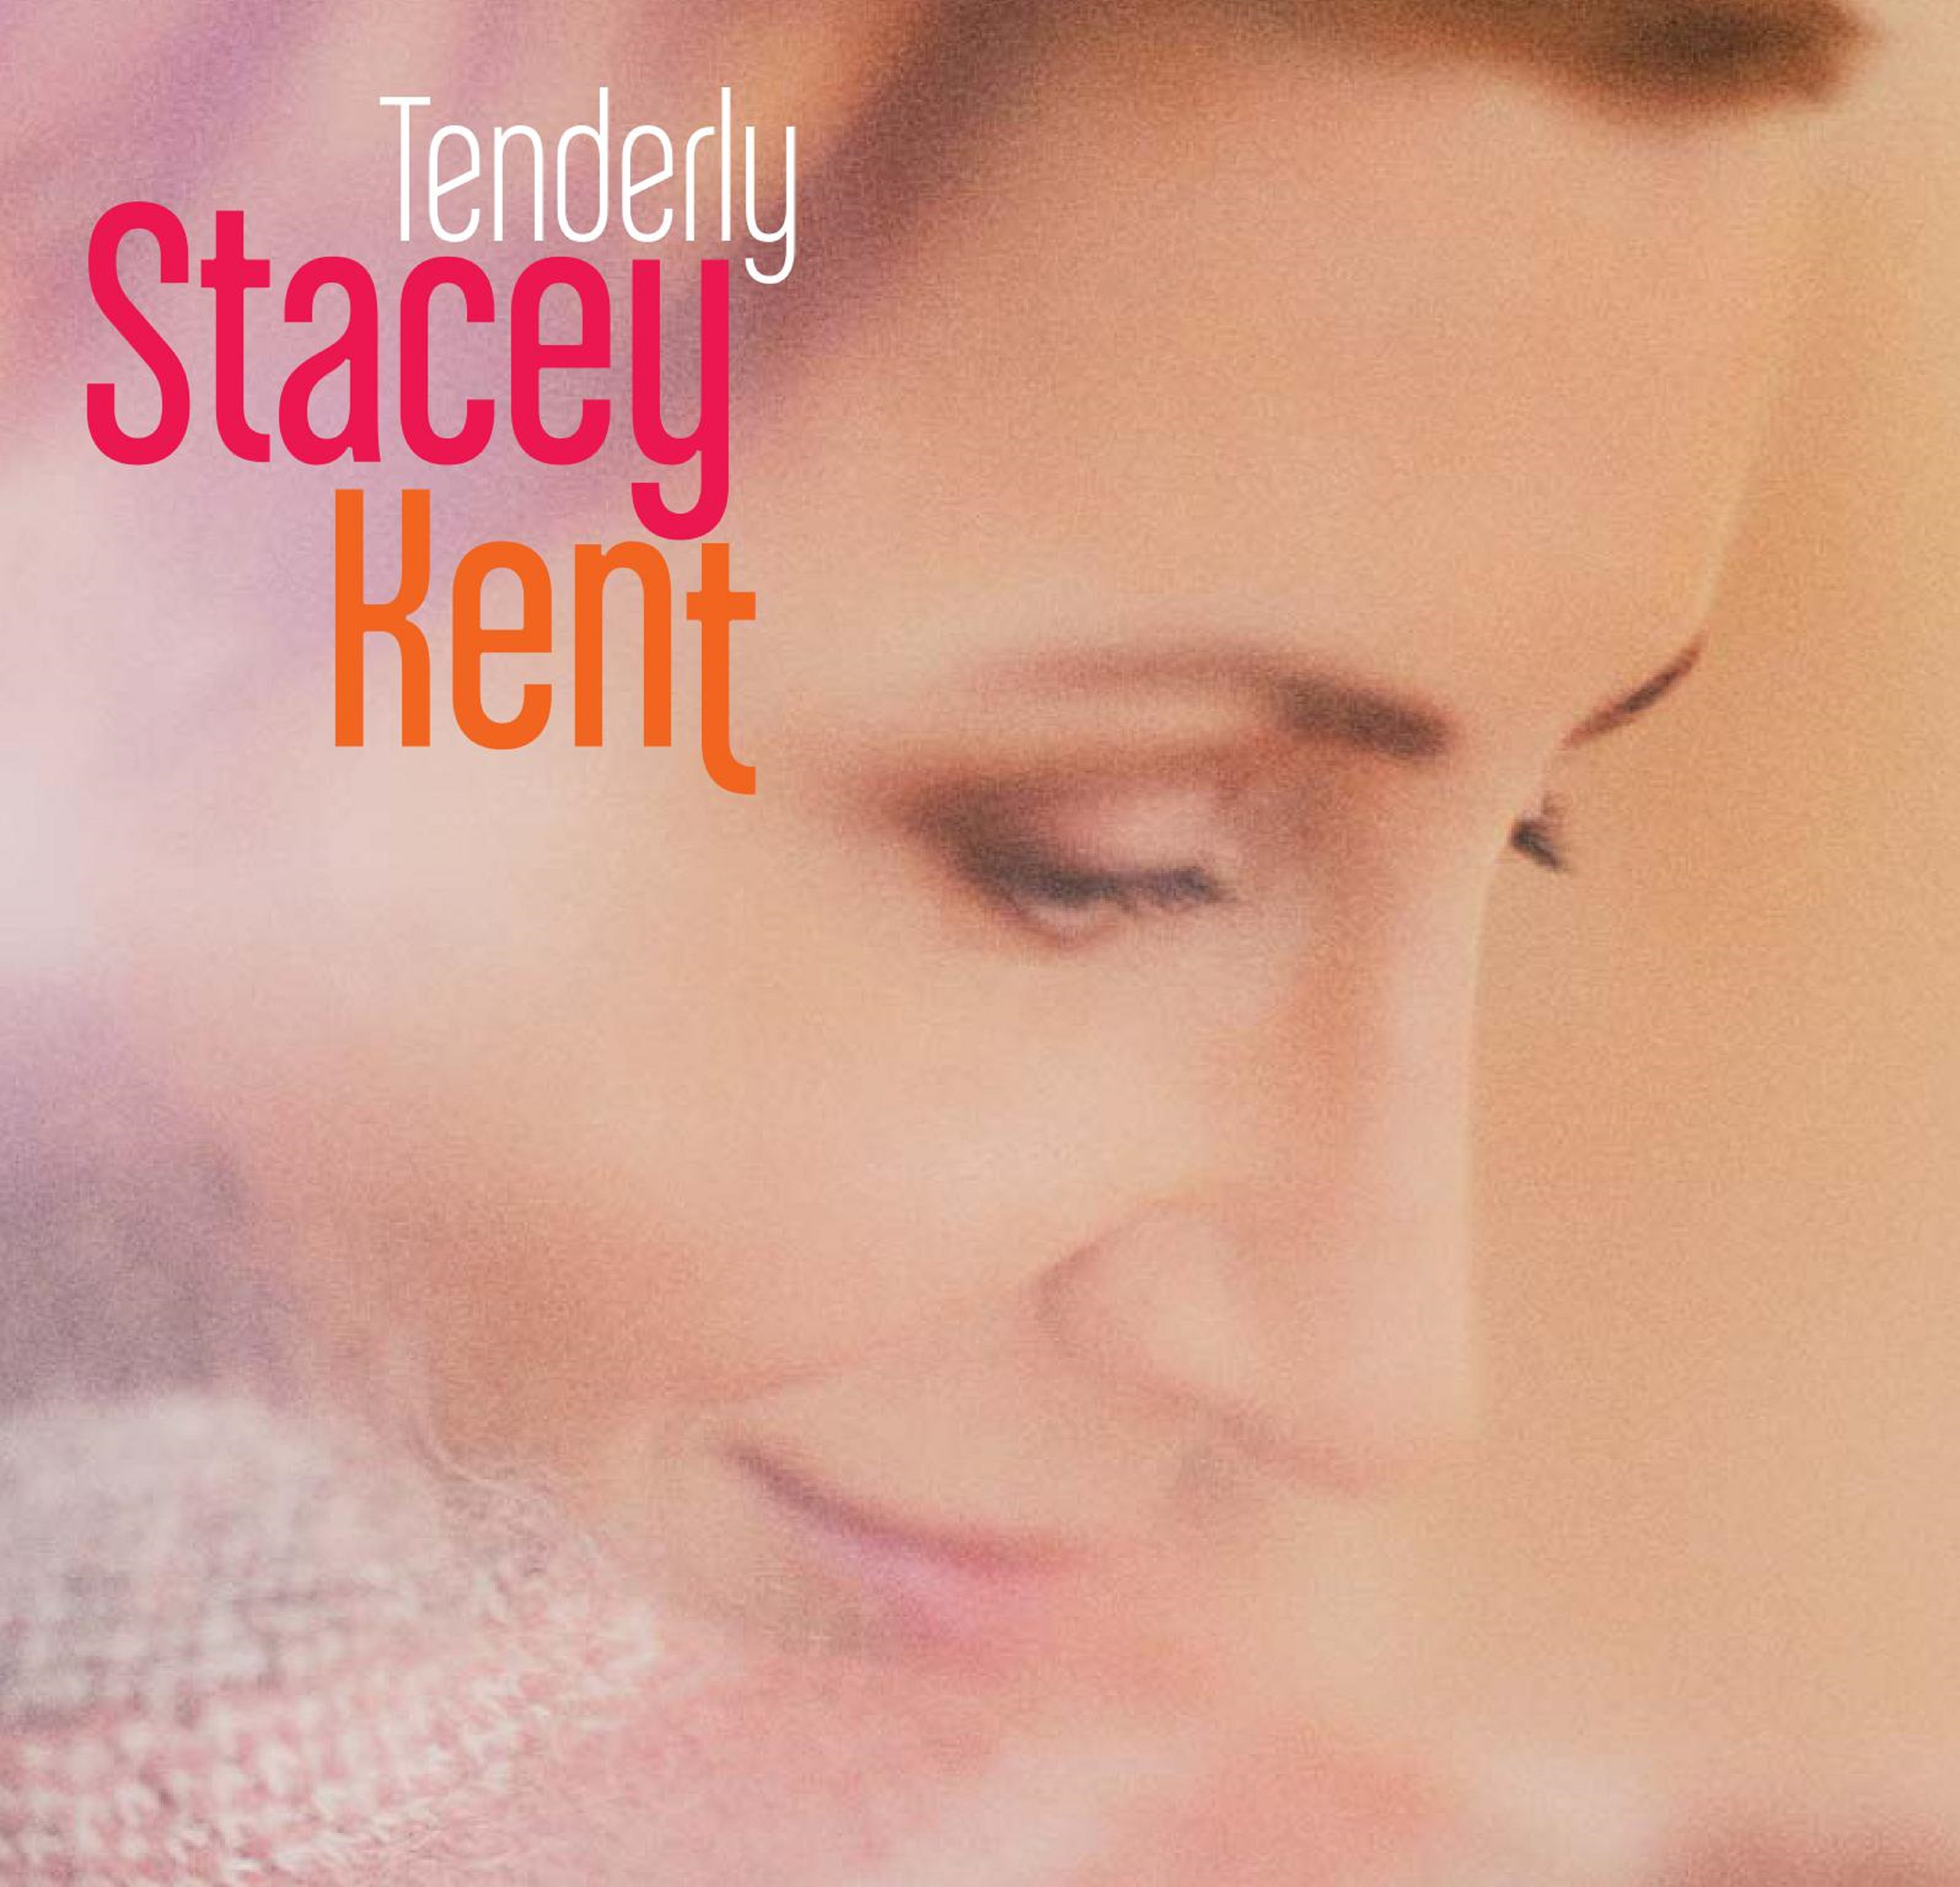 "Stacey Kent's new album ""Tenderly"" out now!"